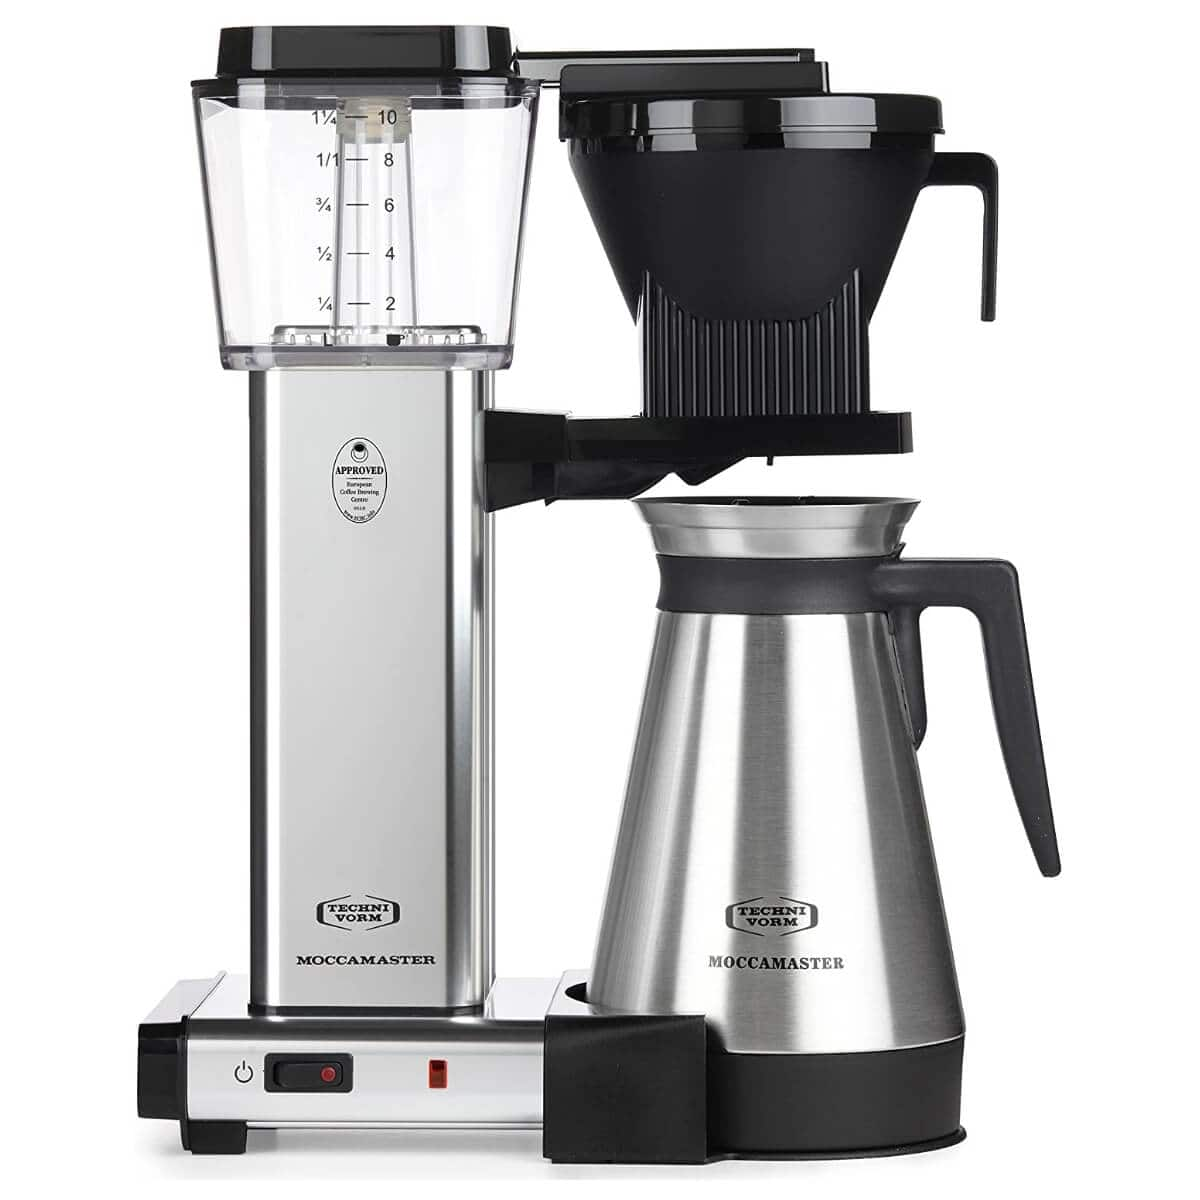 Technivorm Moccamaster 10-Cup Coffee Maker with Thermal Carafe (KBGT) $239.95